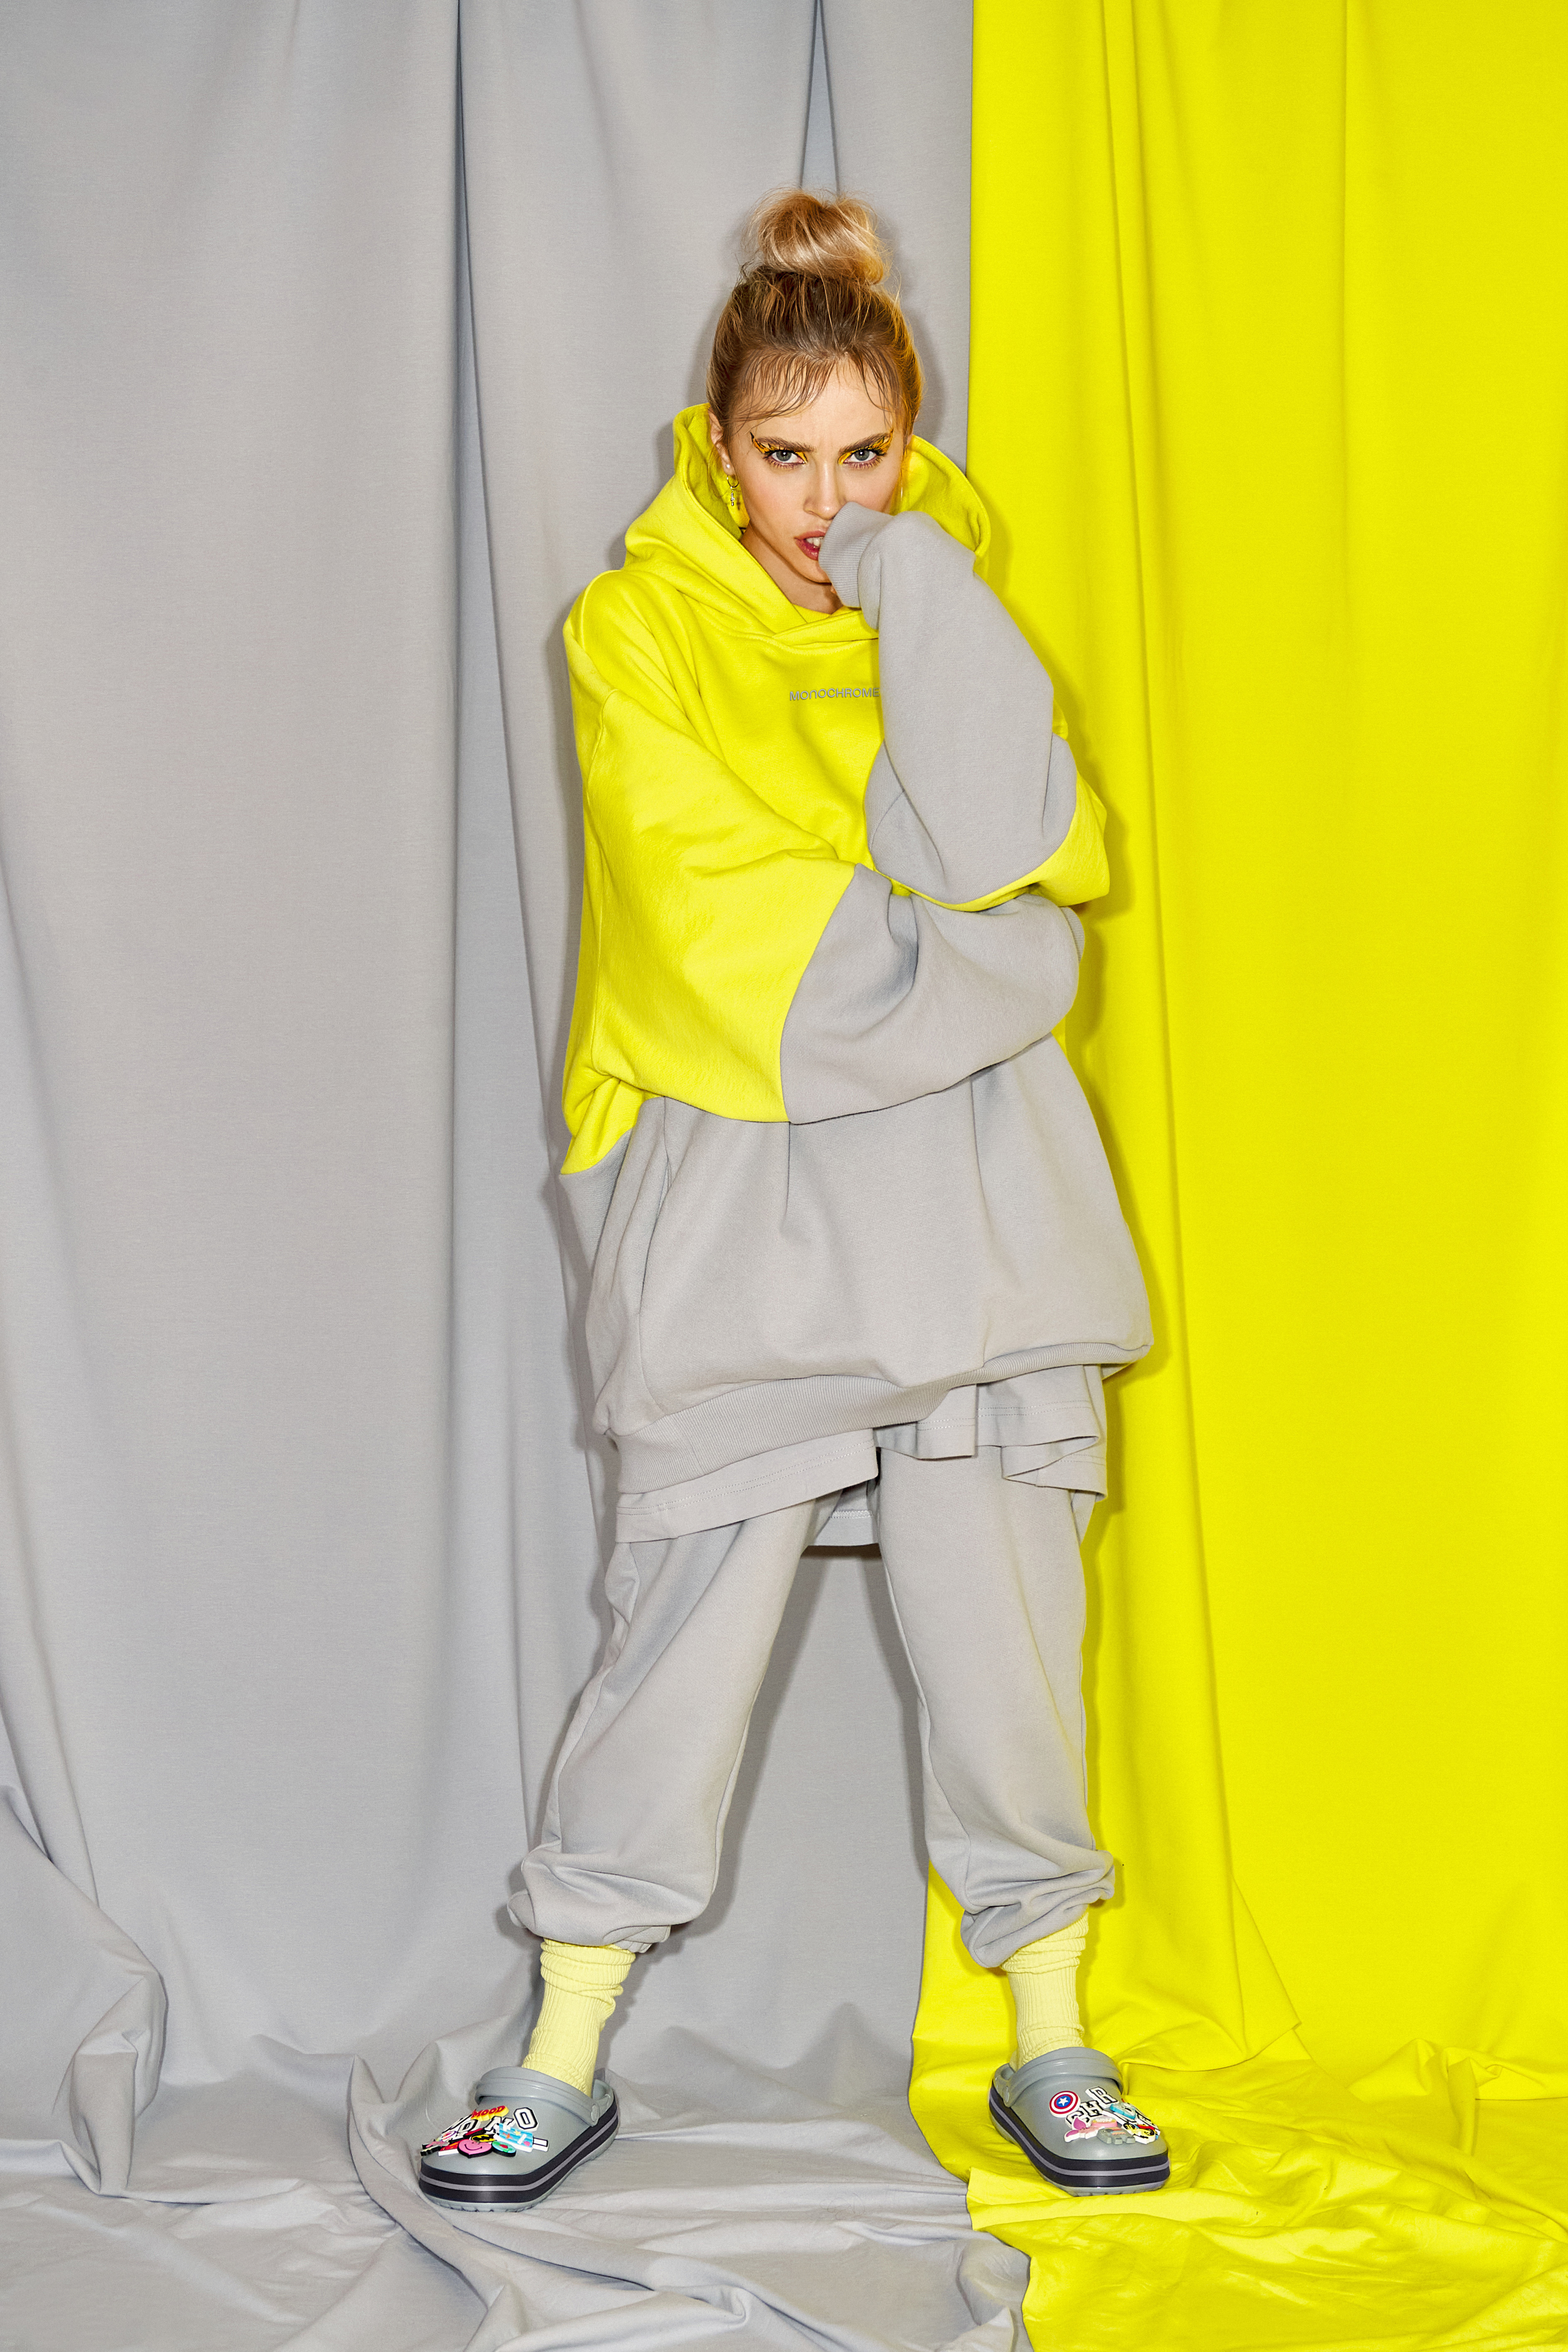 MONOCHROME + PANTONE'S Hoodie Color of the Year 2021